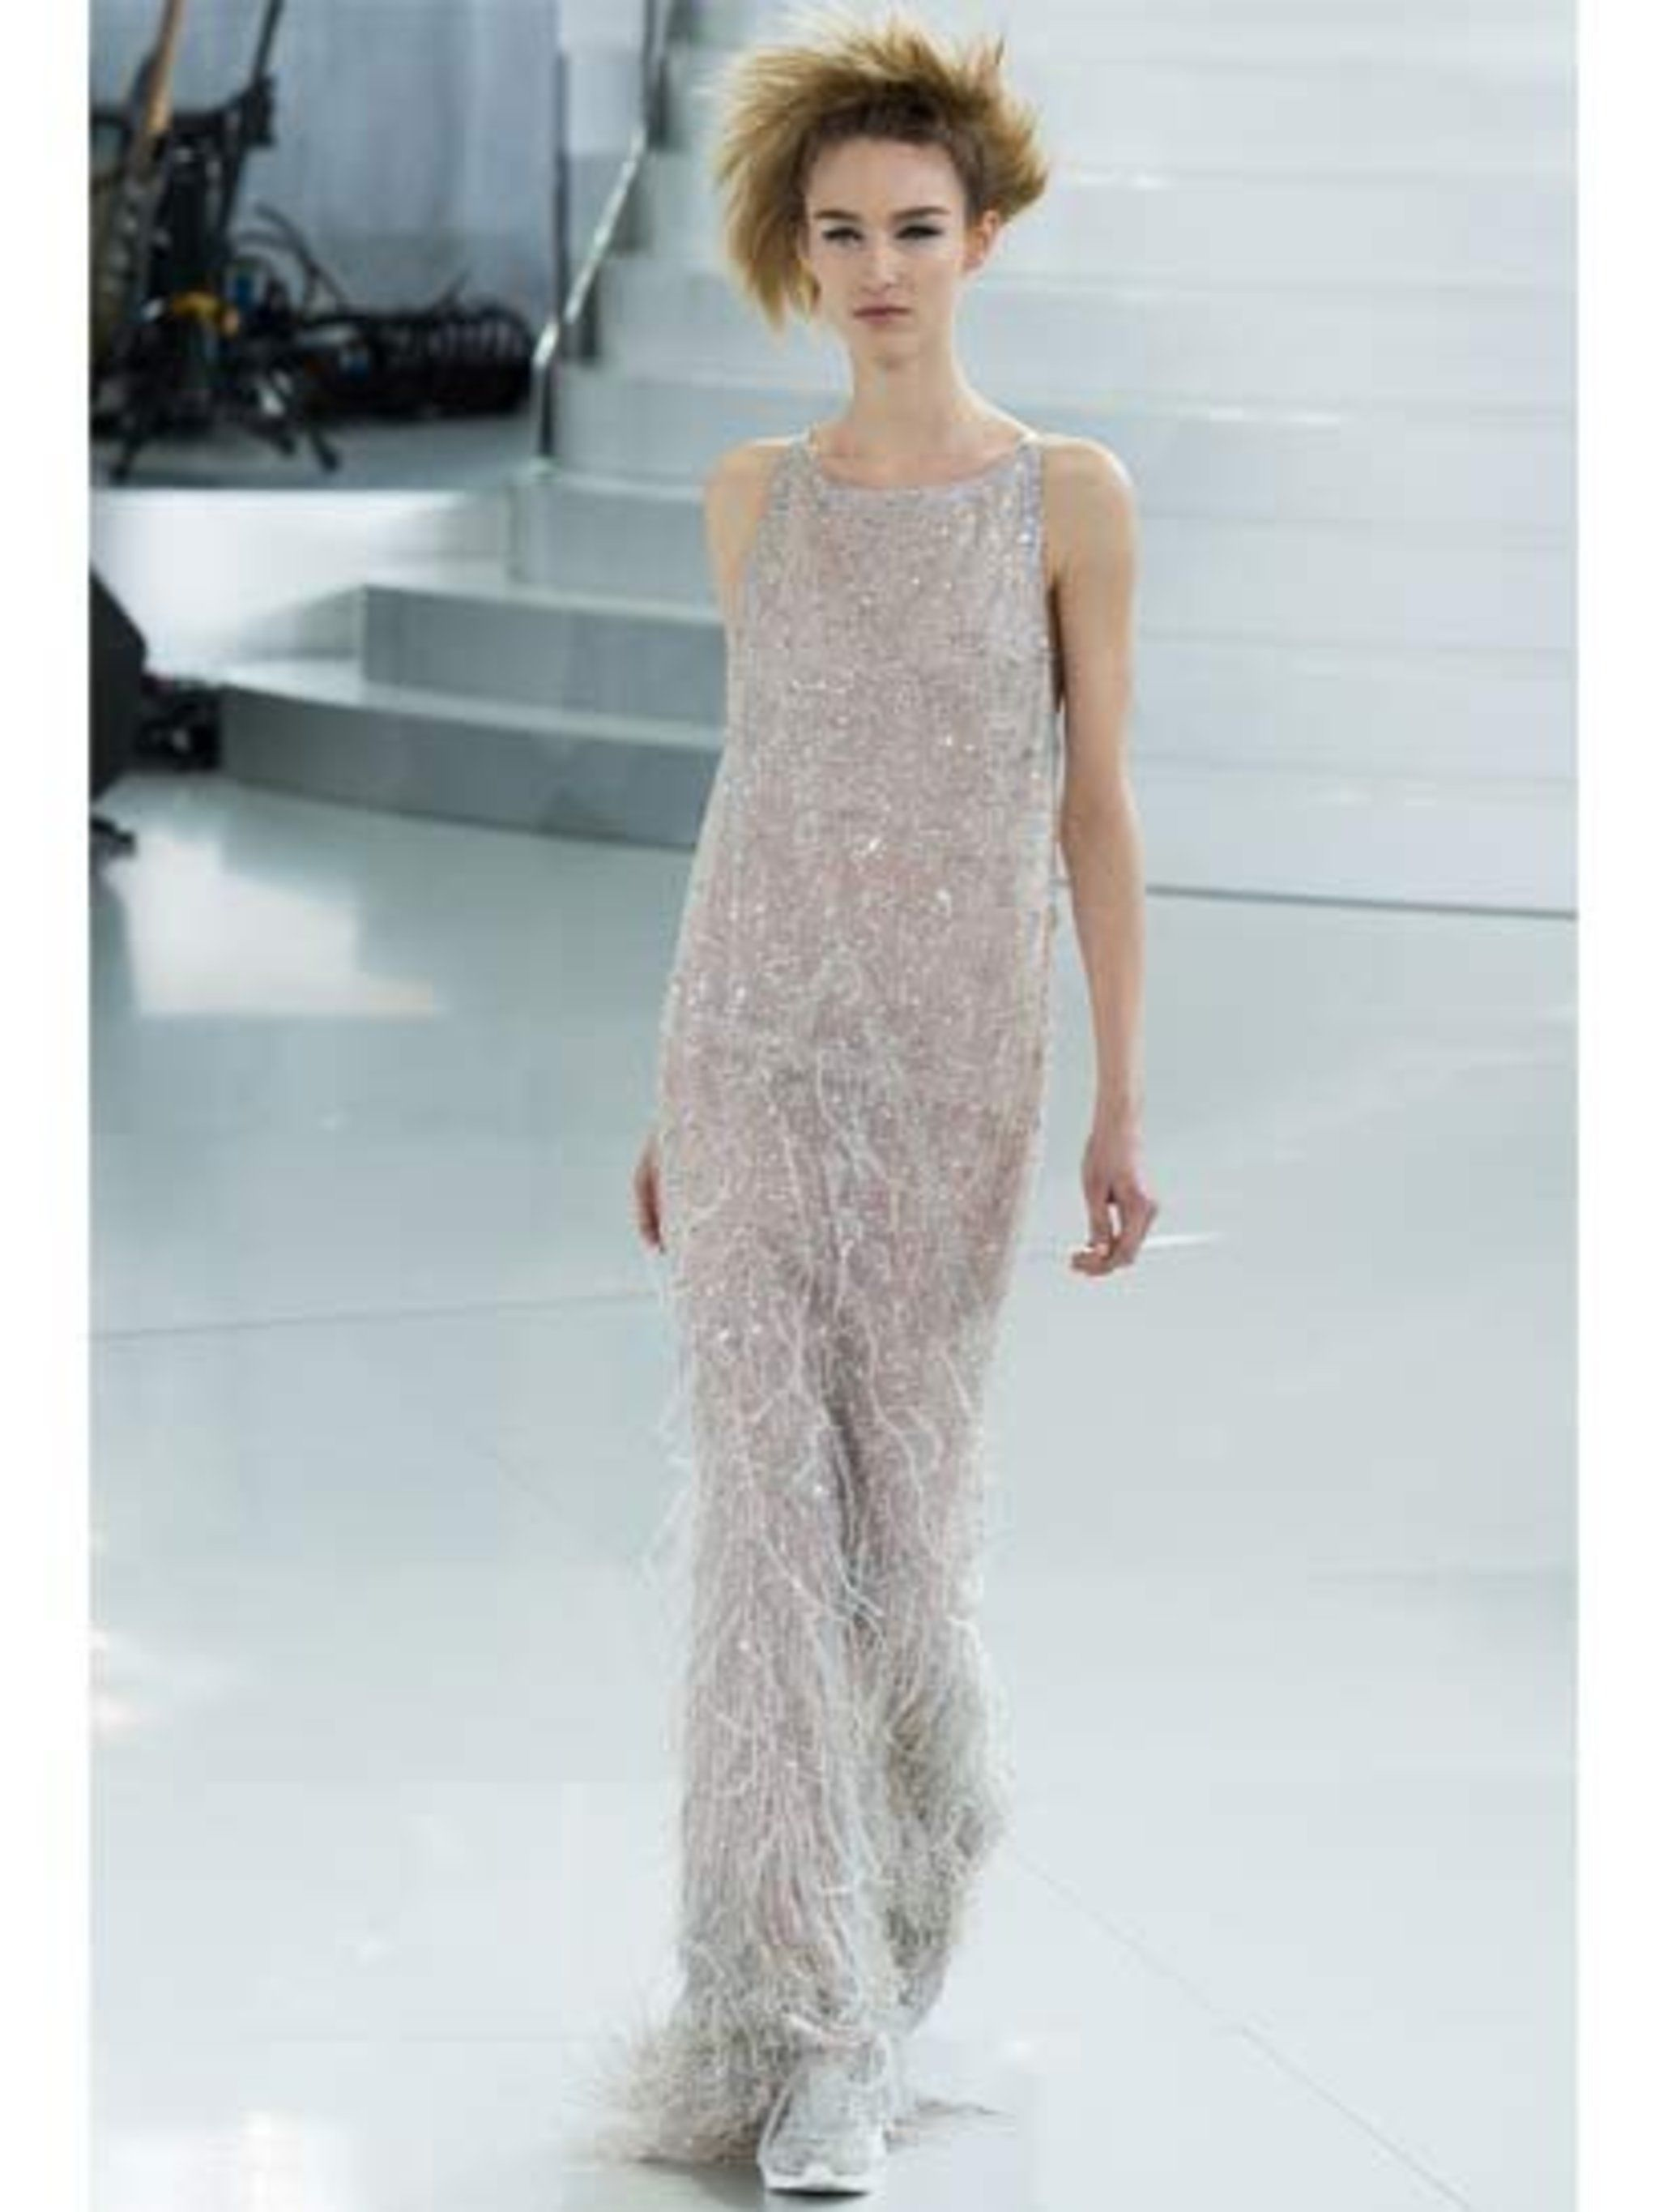 Magnificent Chanel Wedding Gowns Collection - Wedding Dress - googeb.com